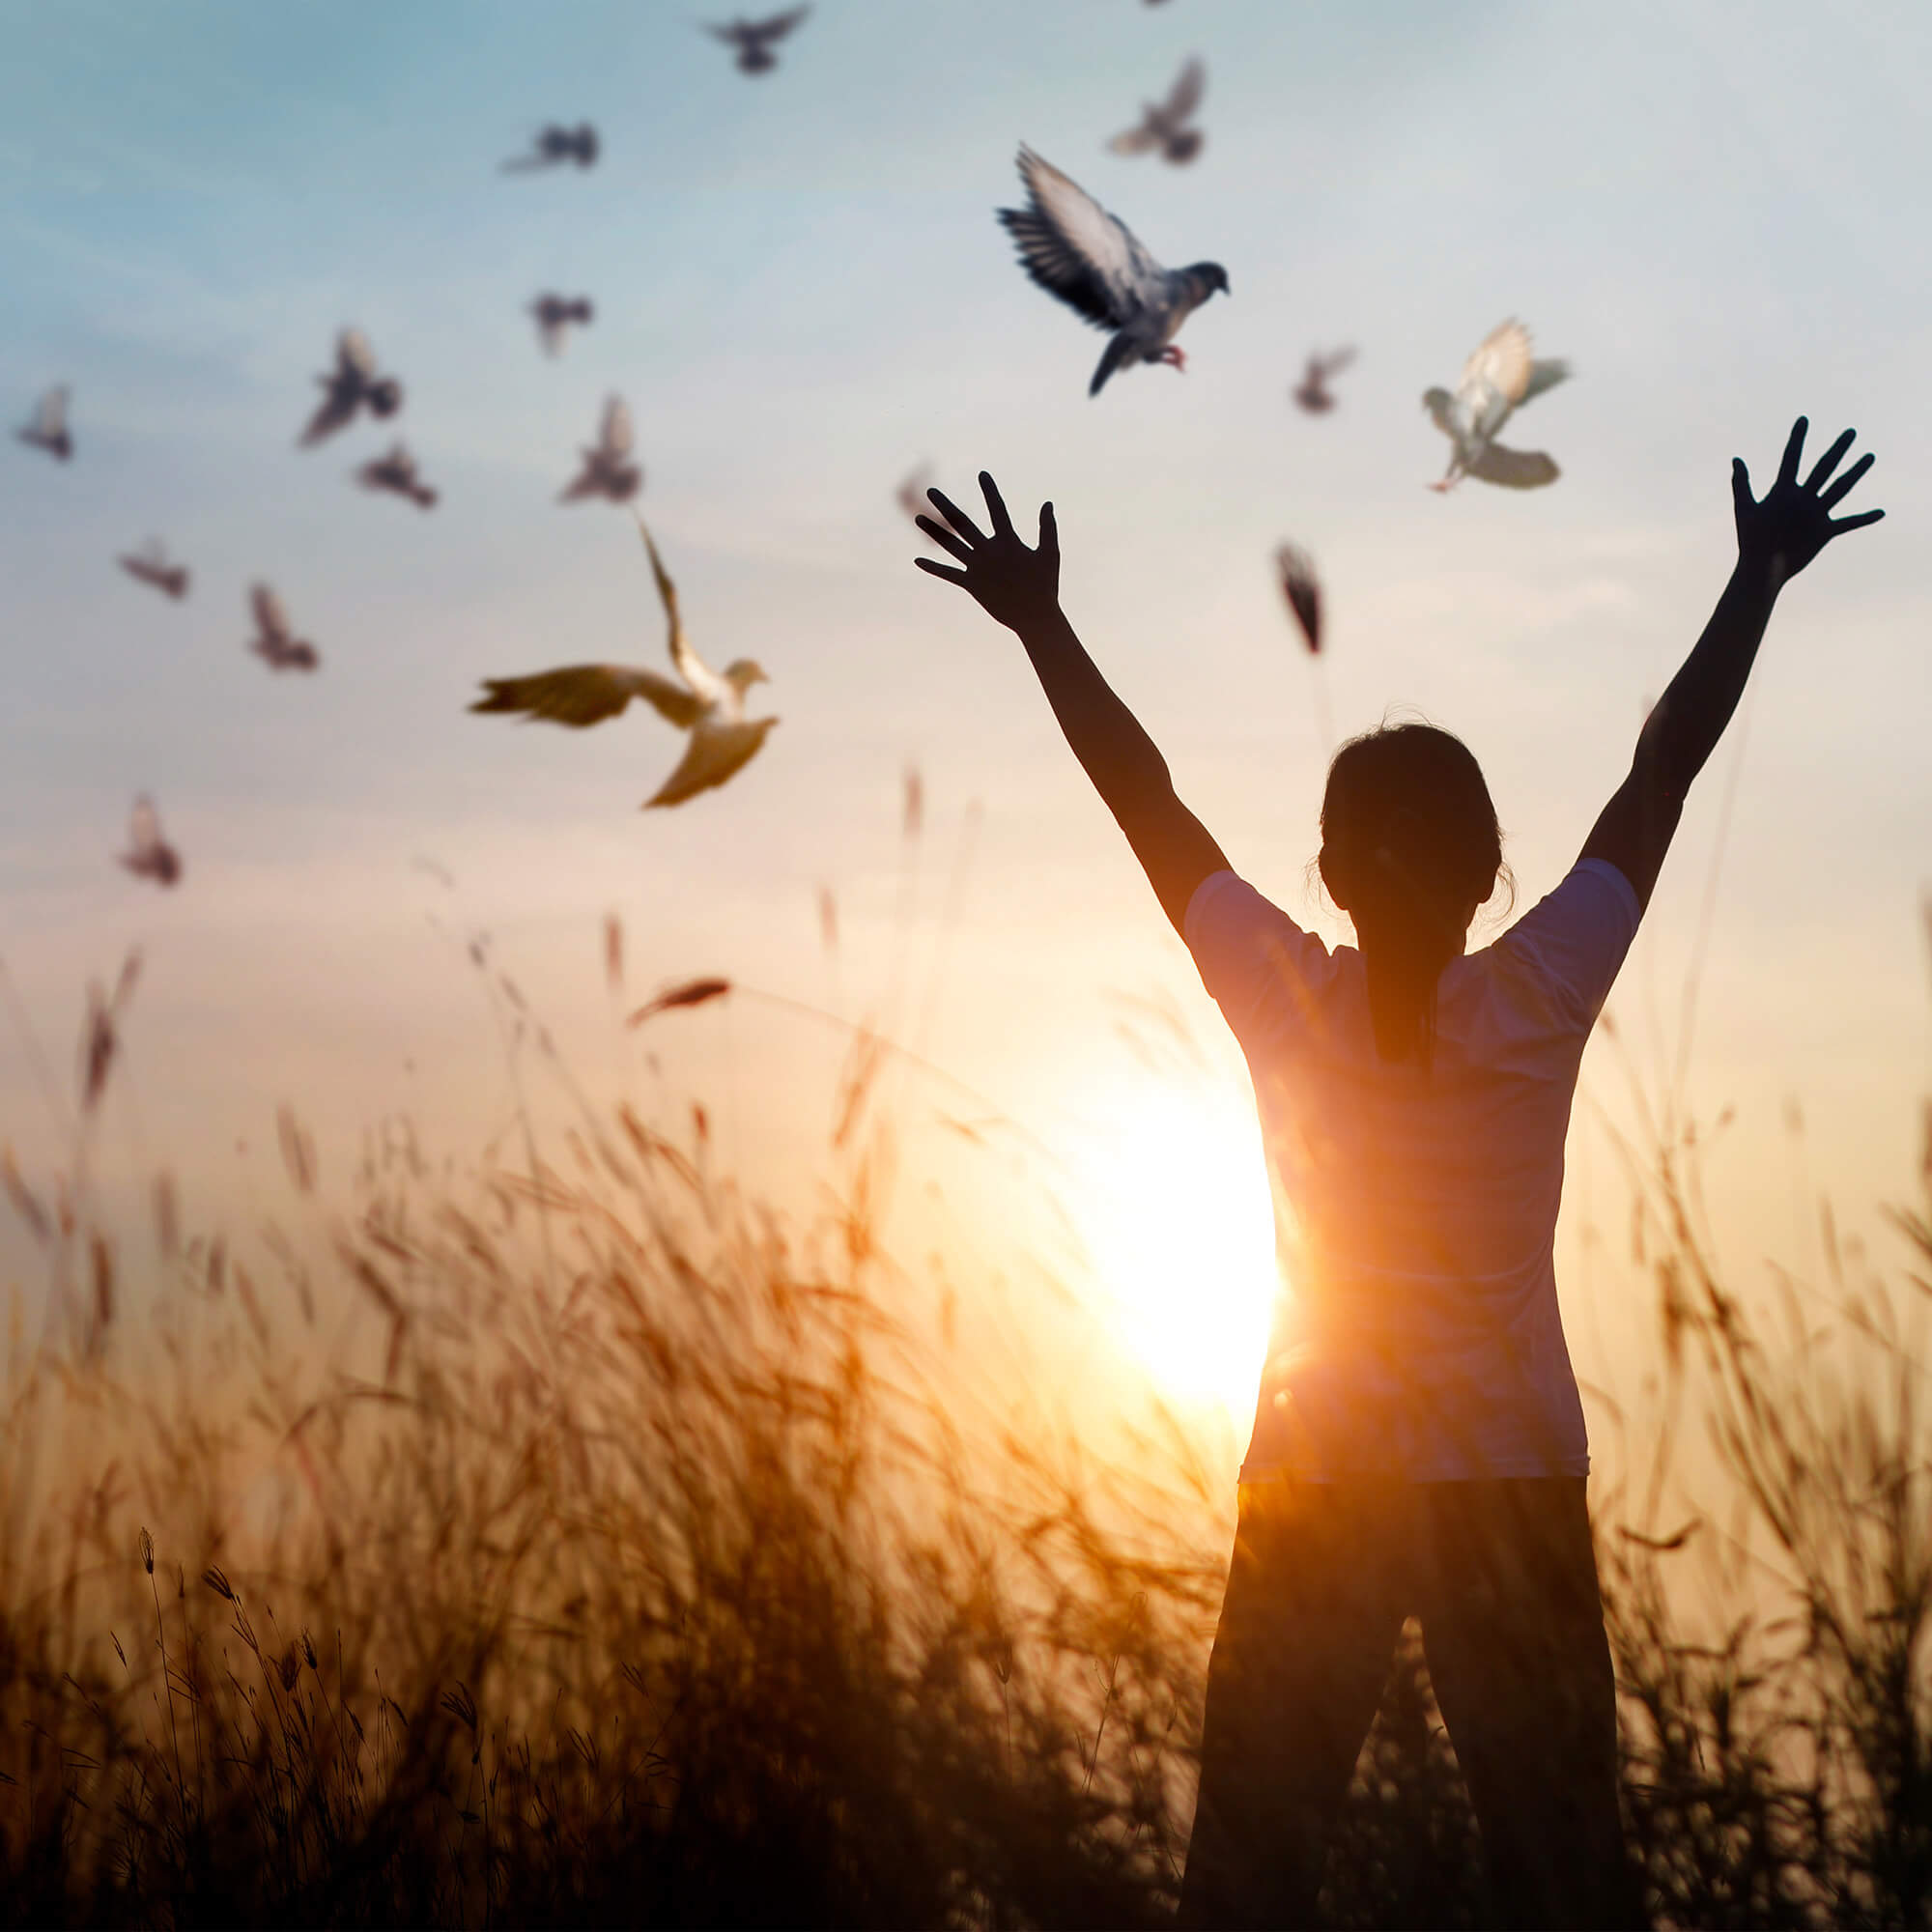 person in a field of tall wild grasses salutes the sunset as birds fly overhead